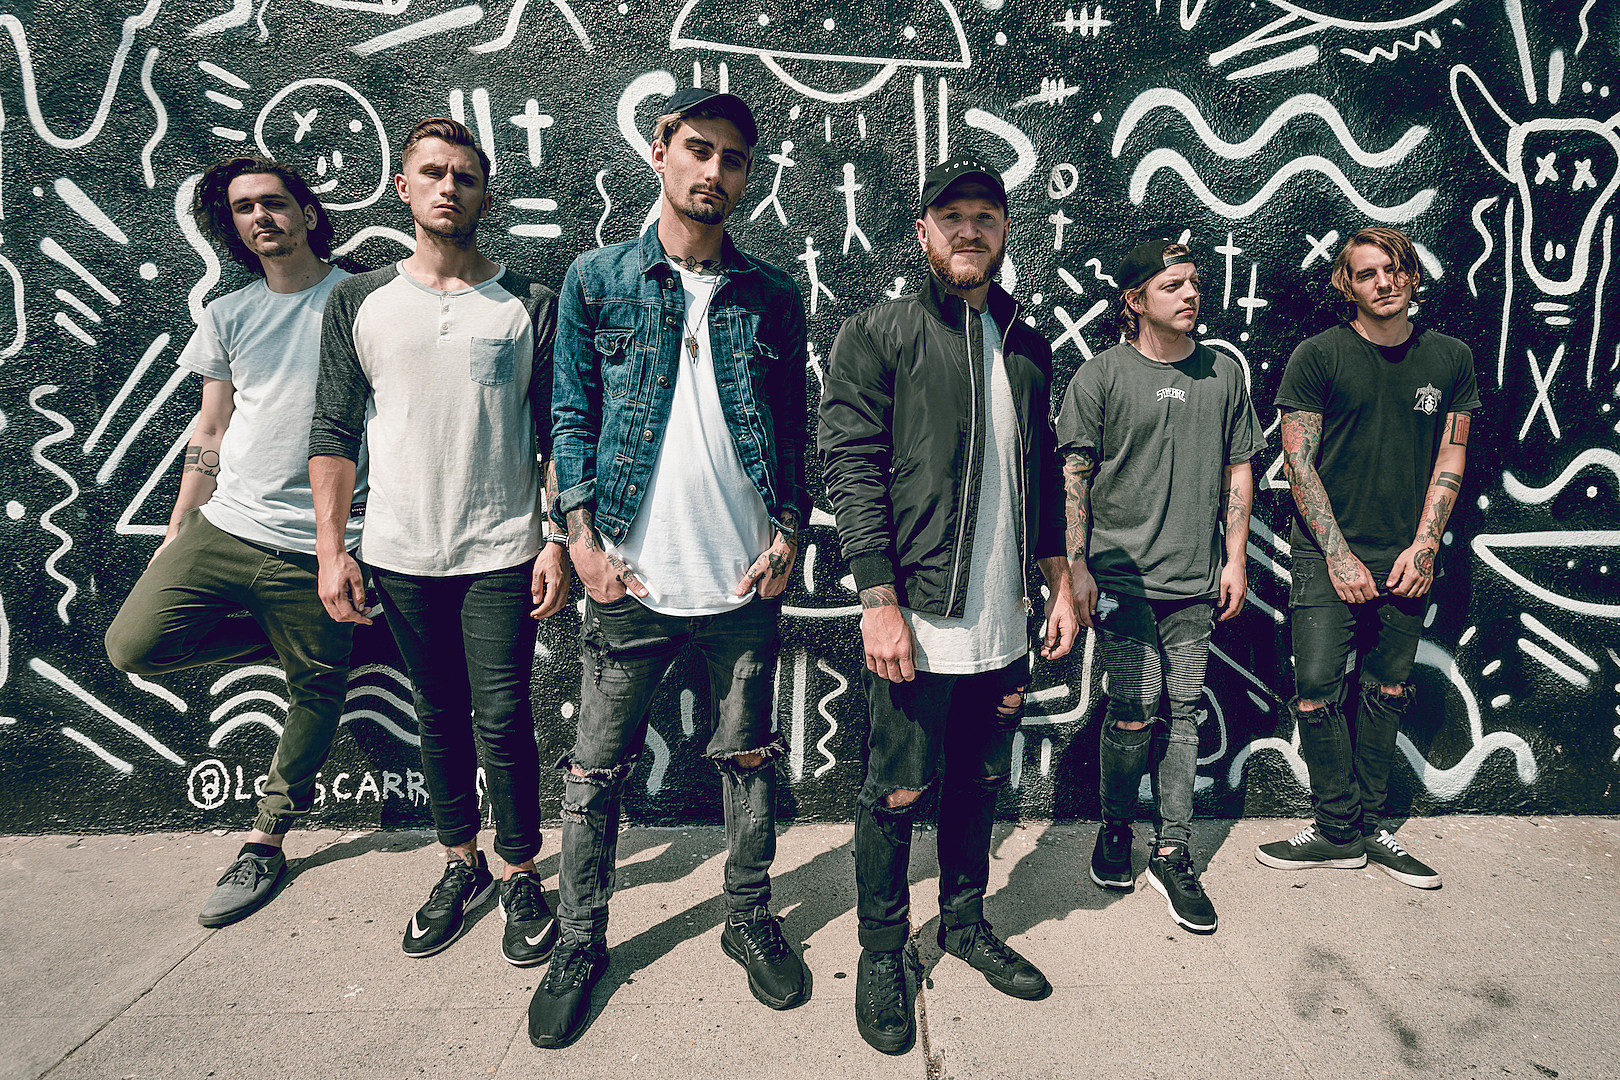 We Came As Romans Tour 2020 We Came as Romans Announce Guests for Kyle Pavone Tribute Show